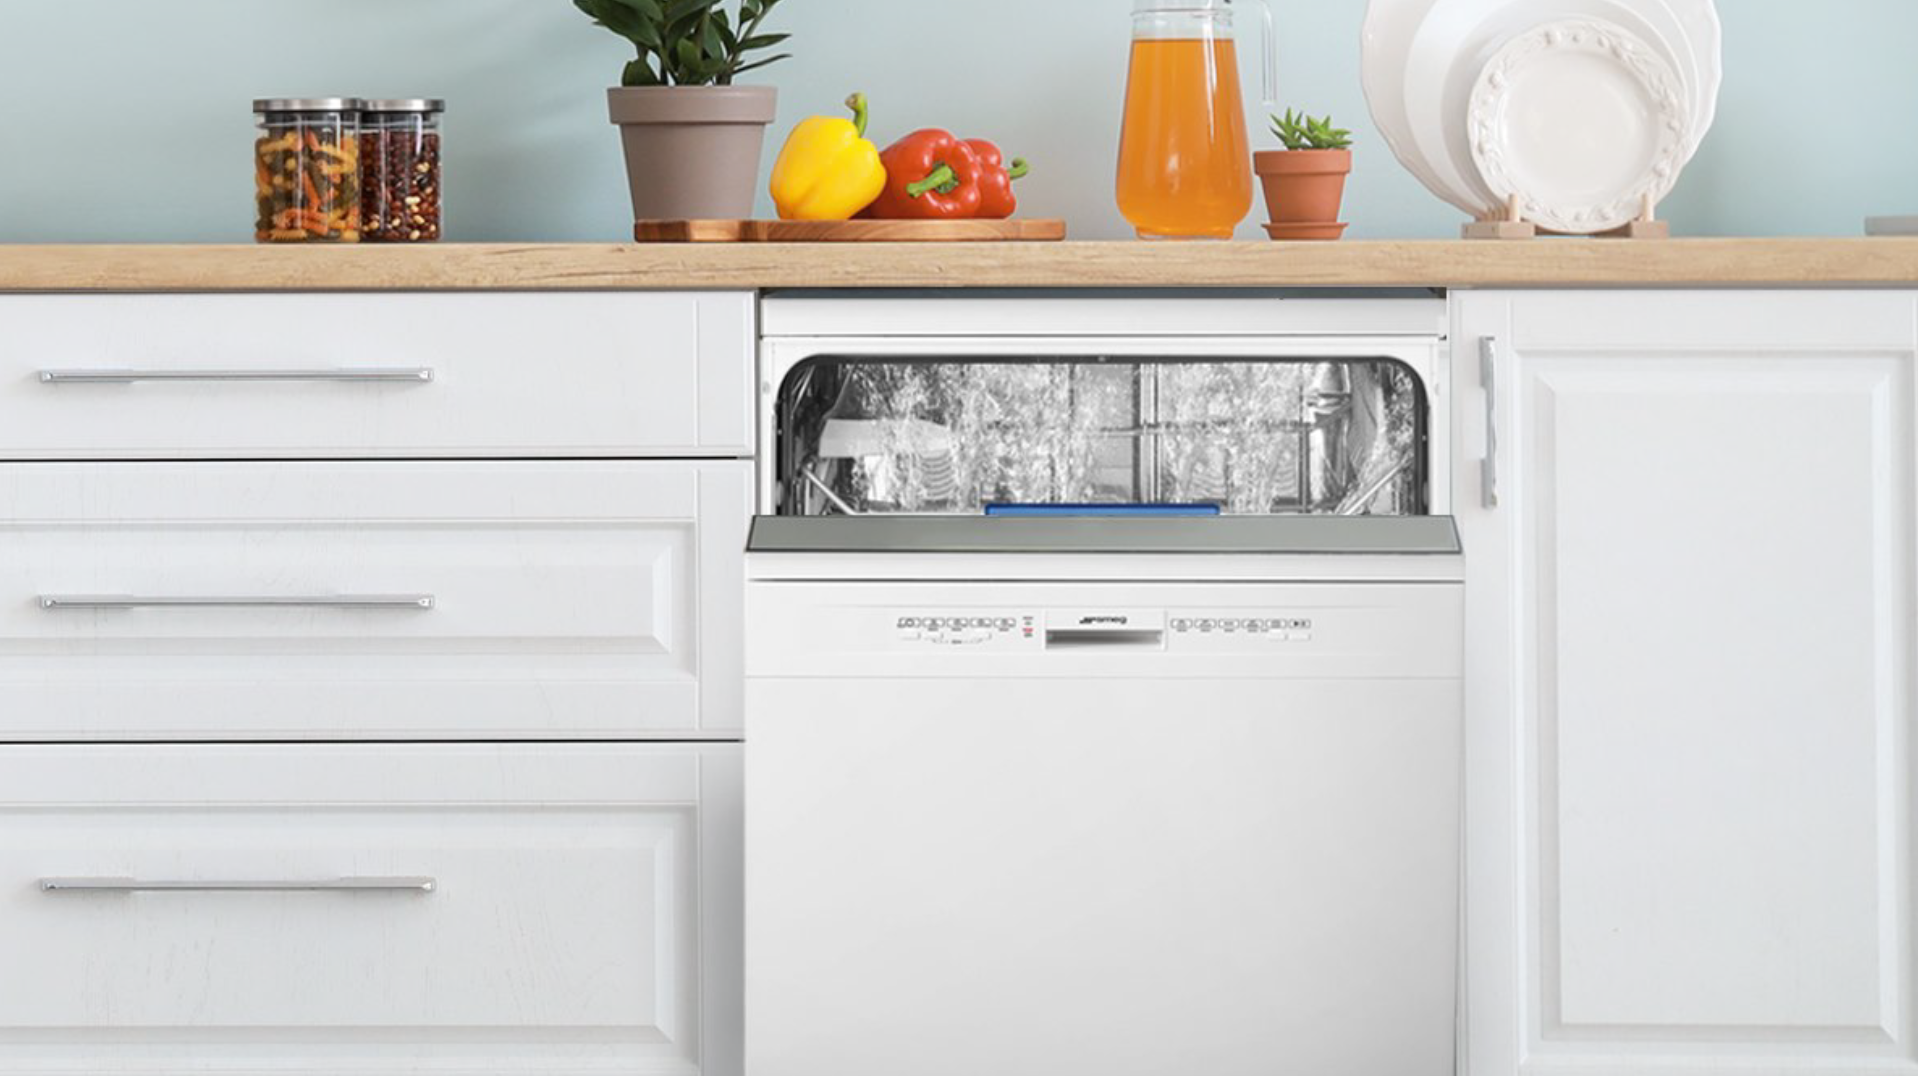 Dishwasher Q&A: All Your Questions About Smeg Dishwashers Answered